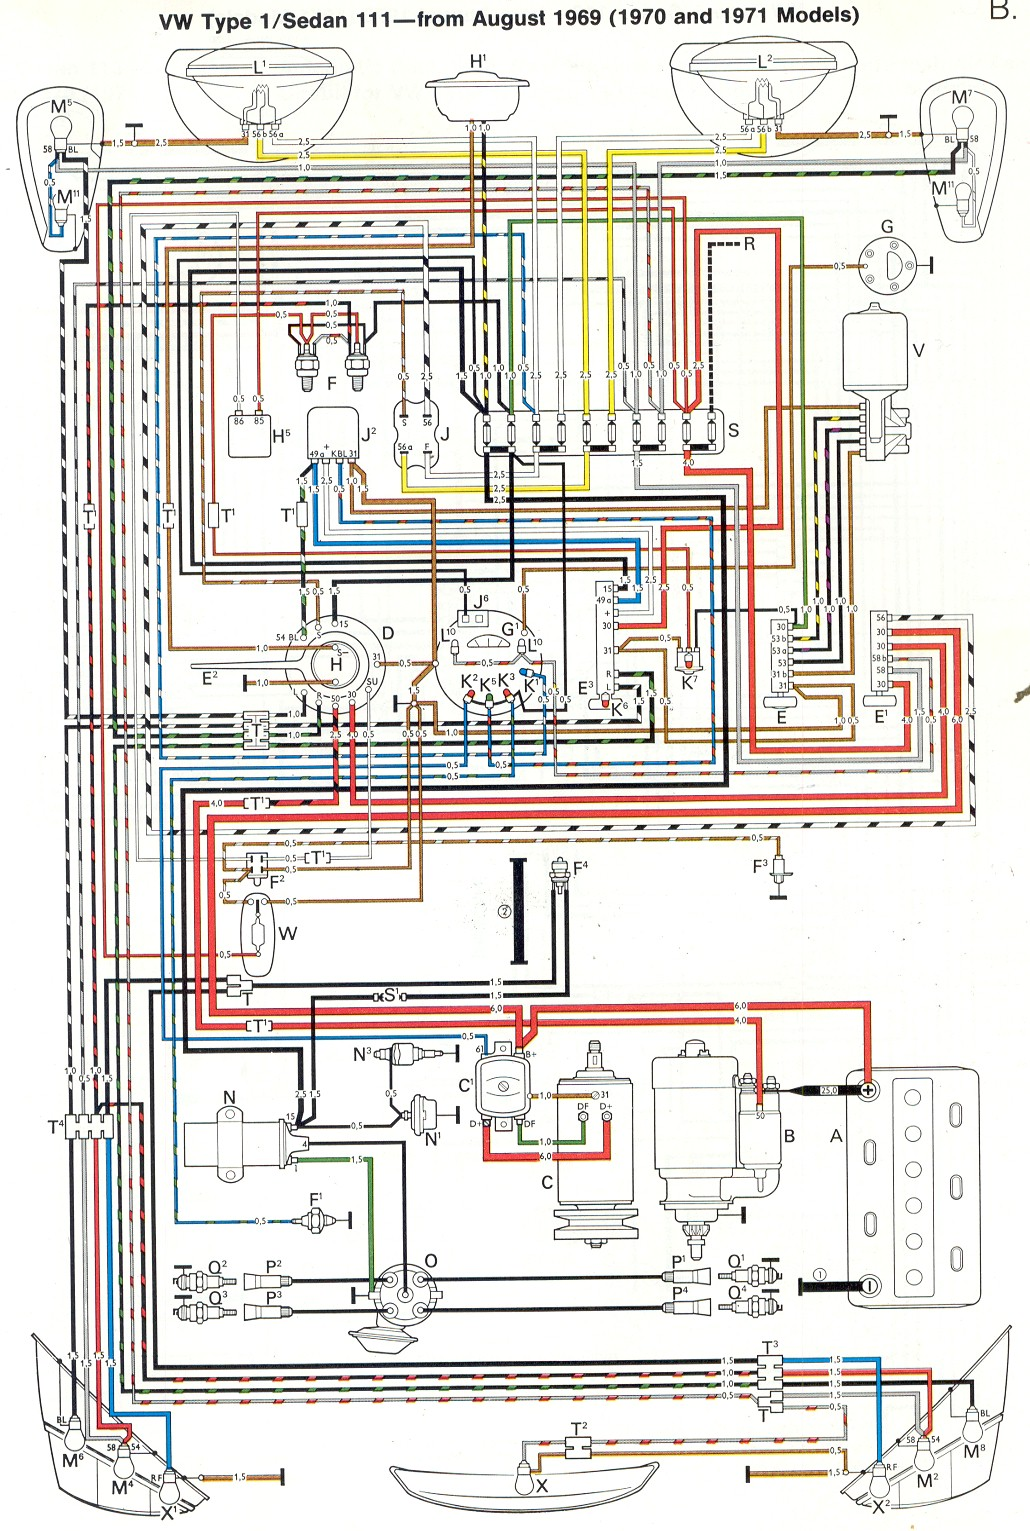 74 vw beetle wiring diagram full version hd quality wiring diagram -  owen.labo-web.fr  owen.labo-web.fr